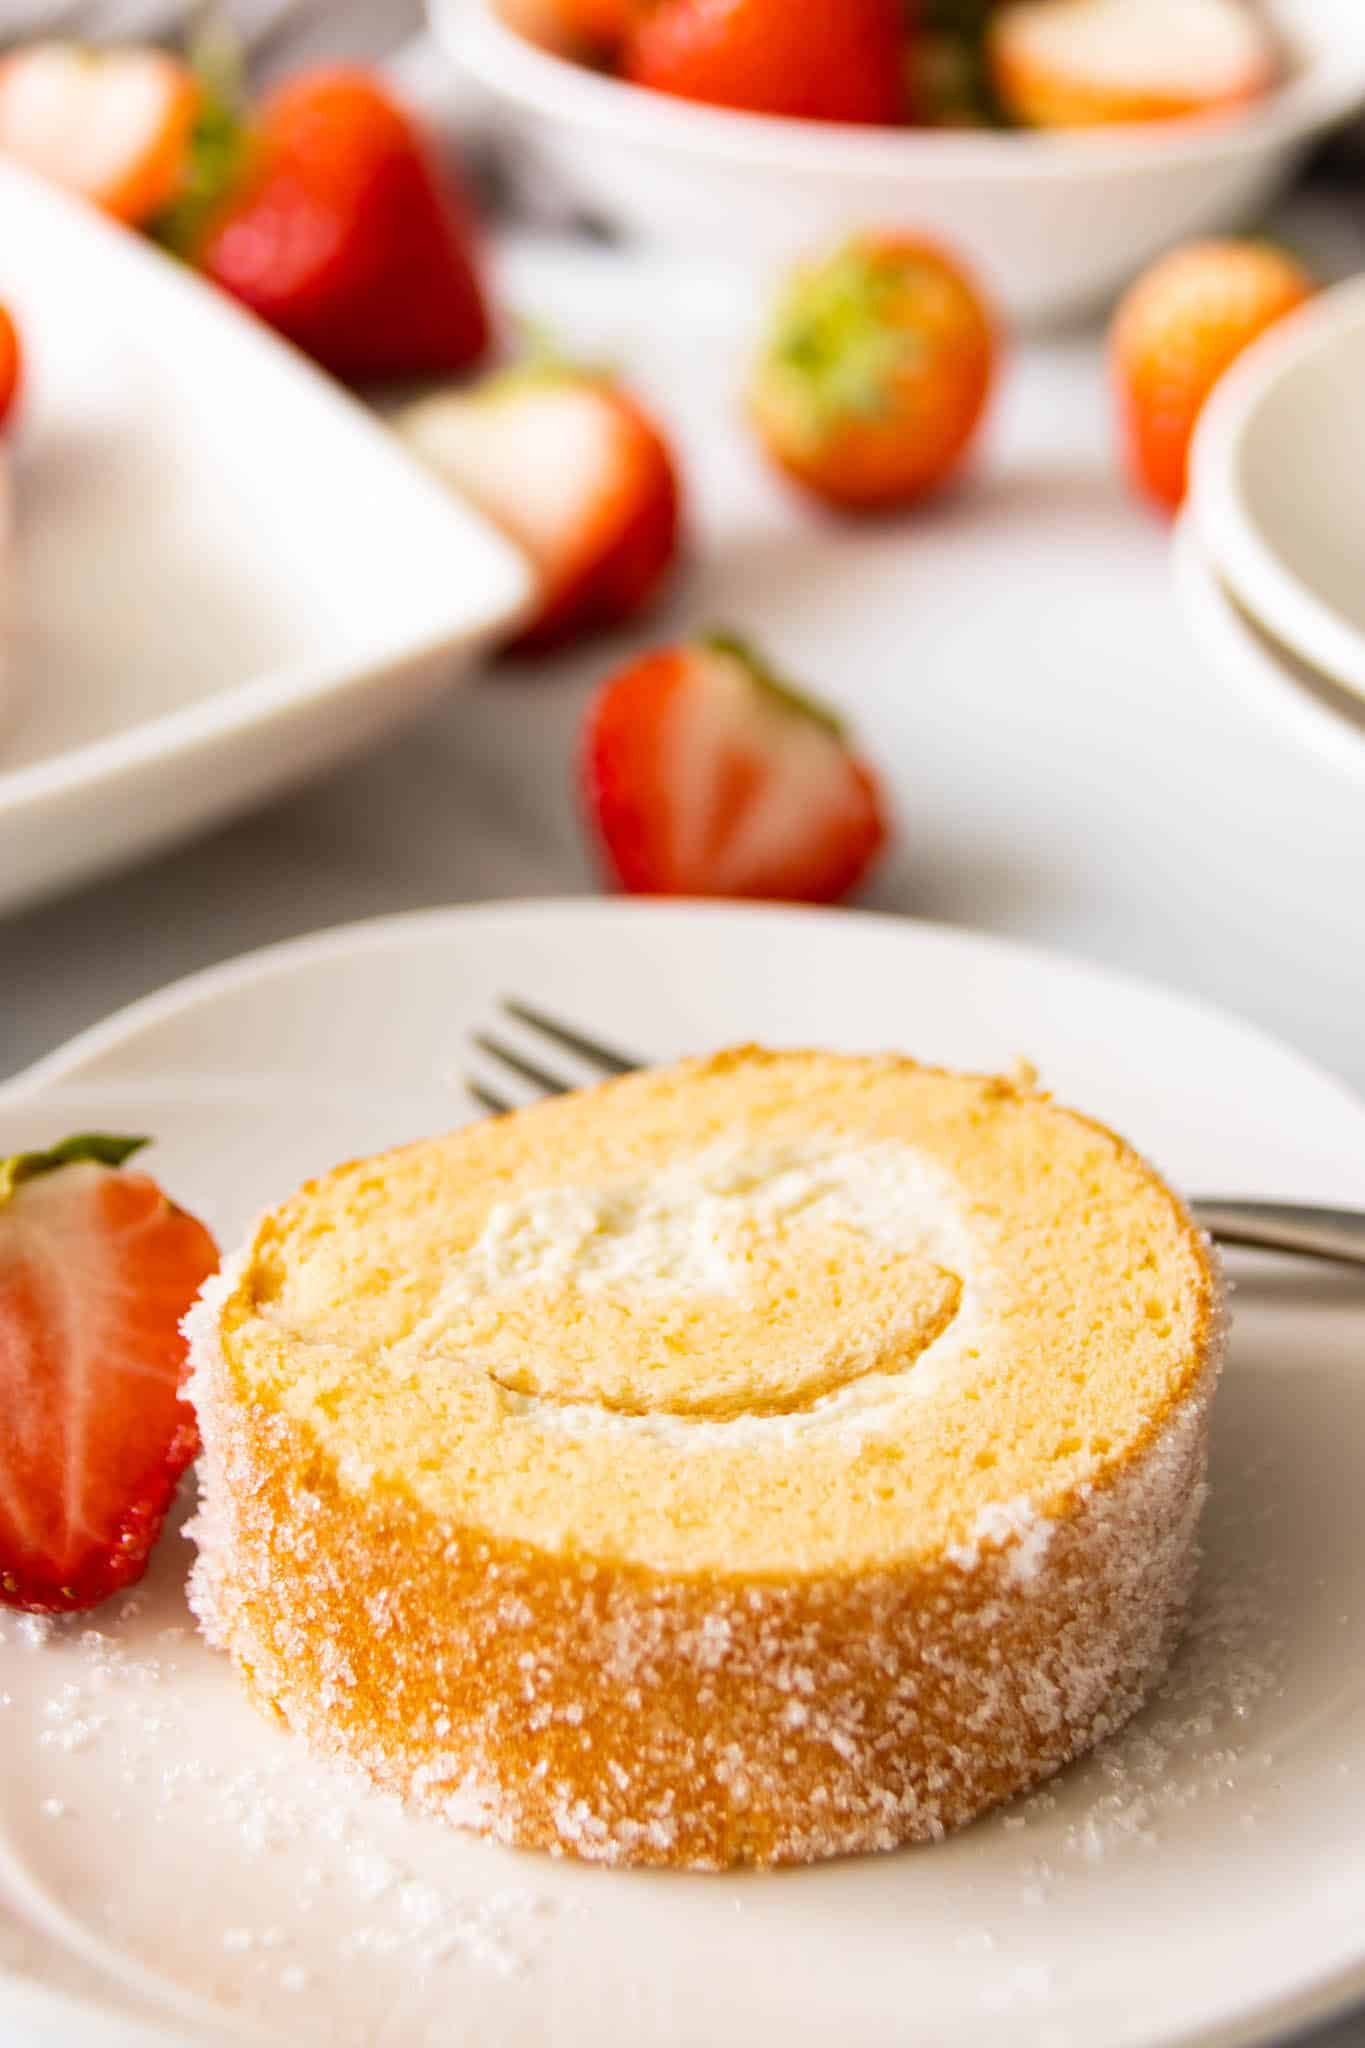 Sugar Swiss roll, served on a plate with fresh strawberries